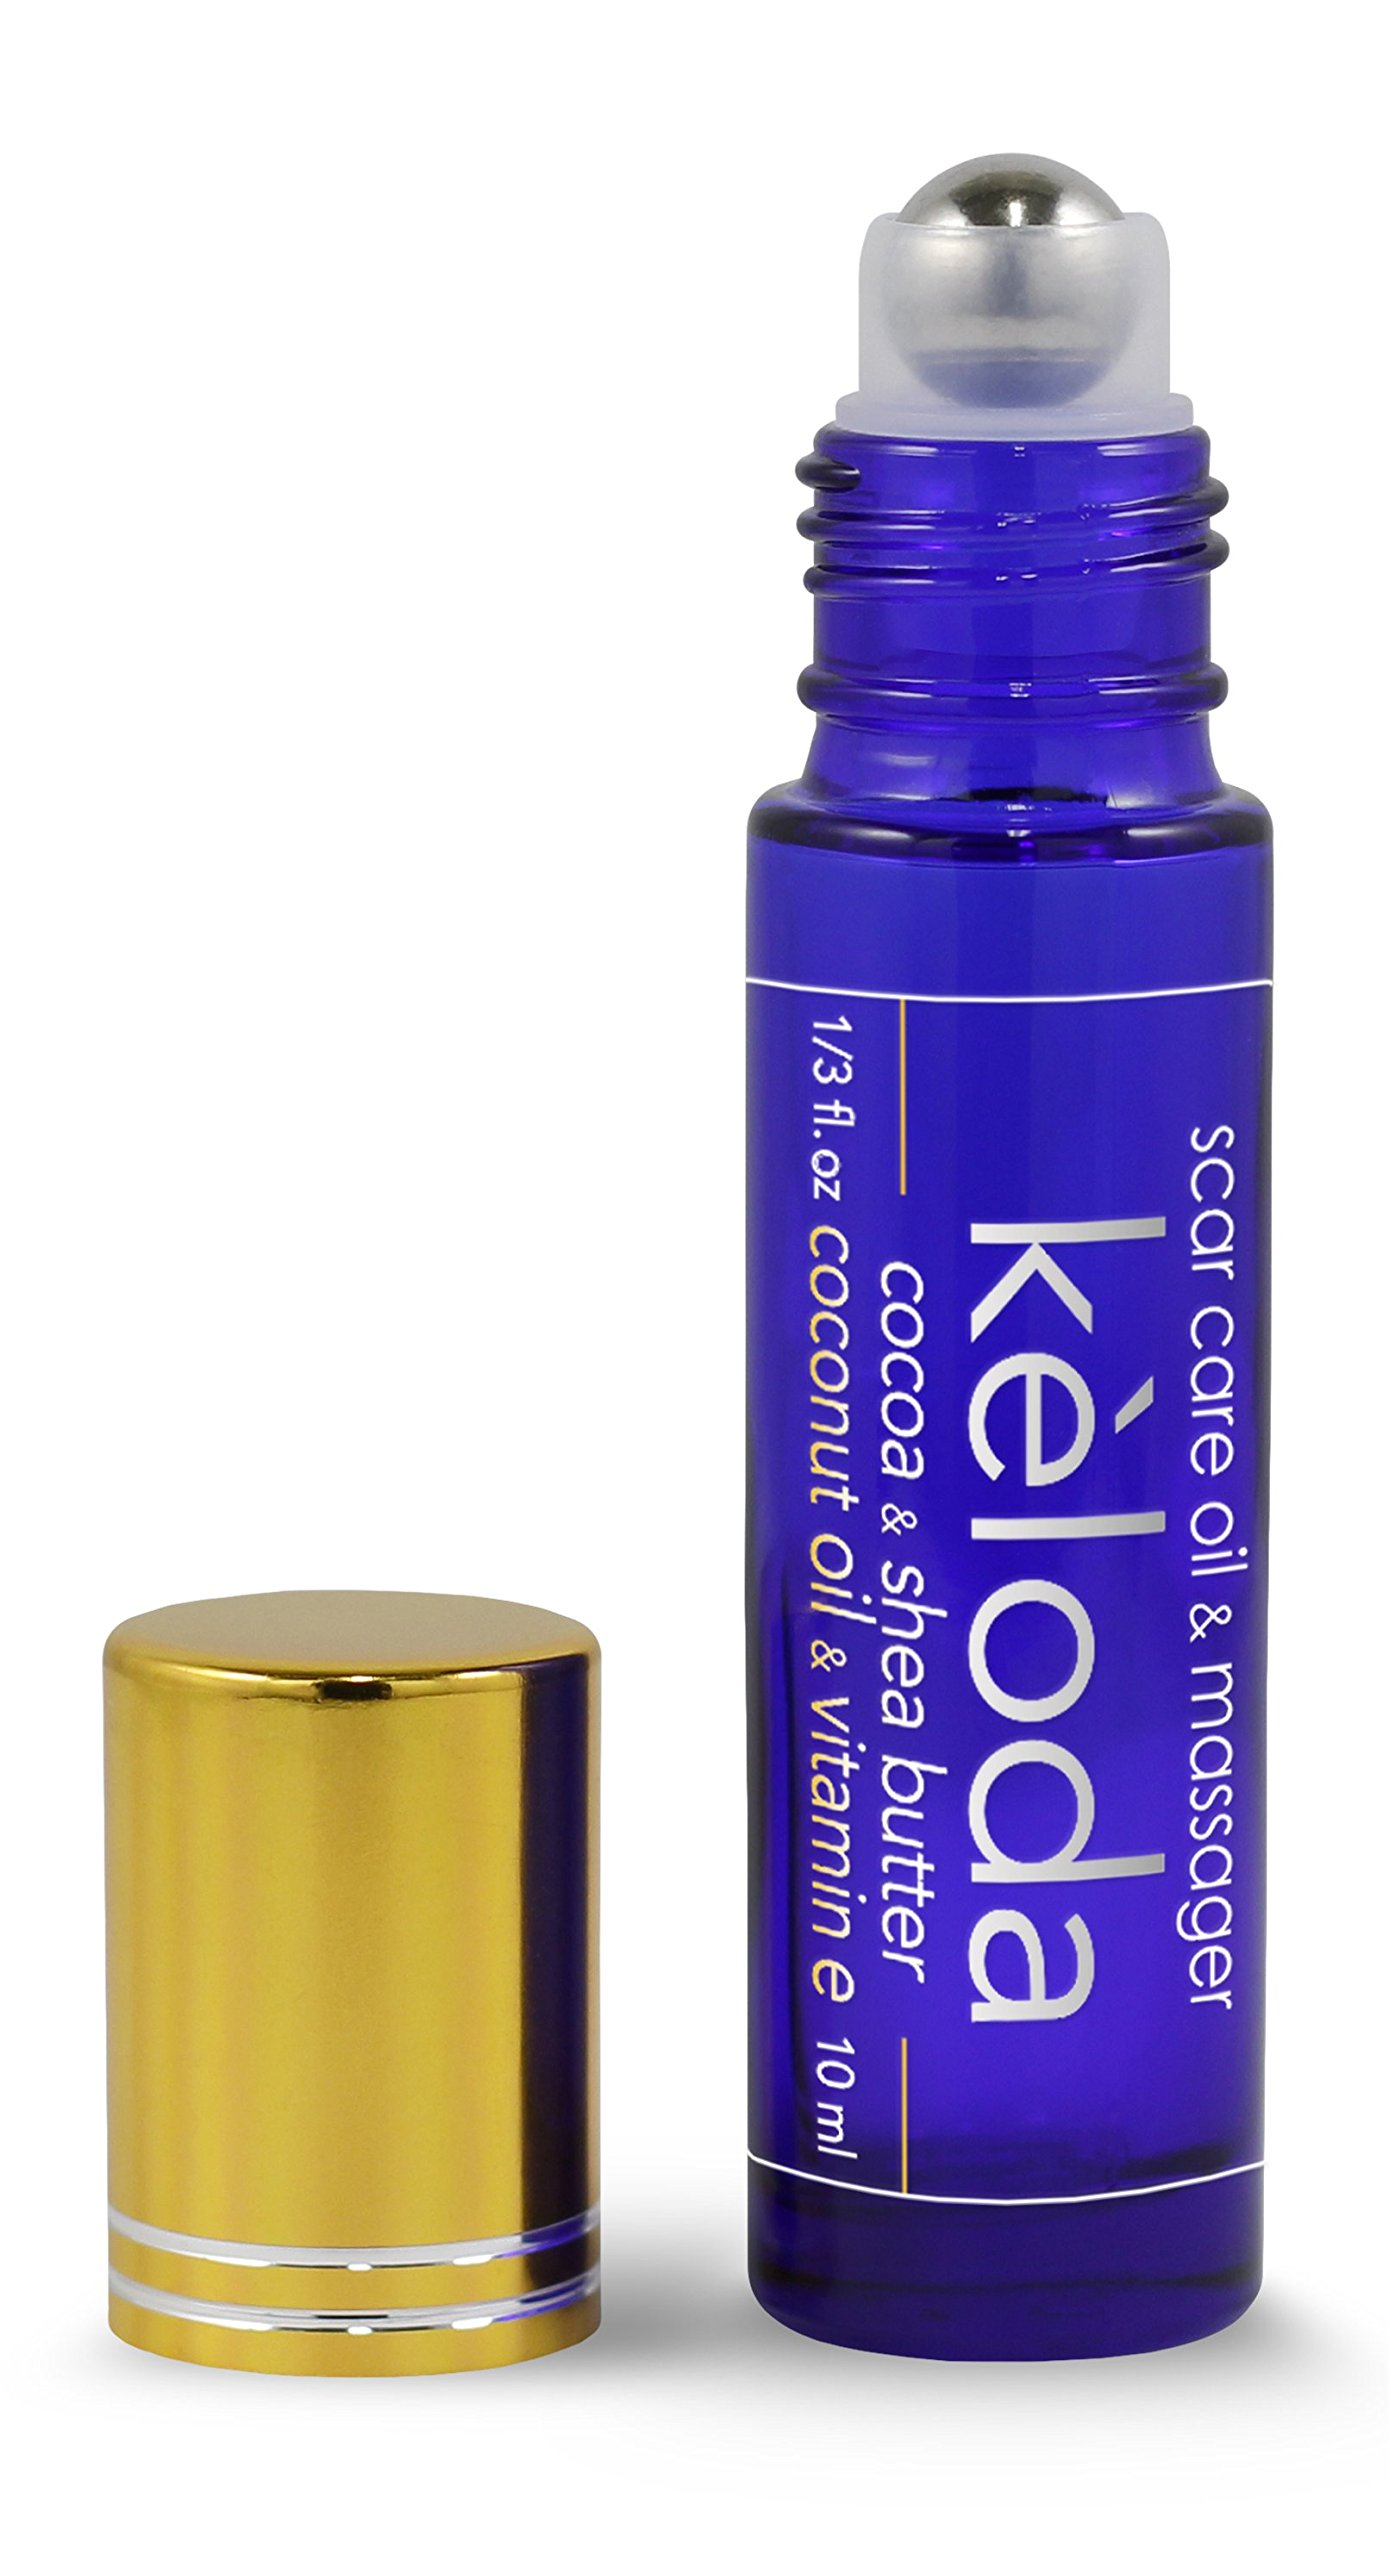 KELODA: Scar Massager with Cocoa and Shea Butter, Vitamin E, Coconut Oil and Lavender essential oil; natural scar care tool for surgical scars and keloids, and scarring after burn, piercing and acne